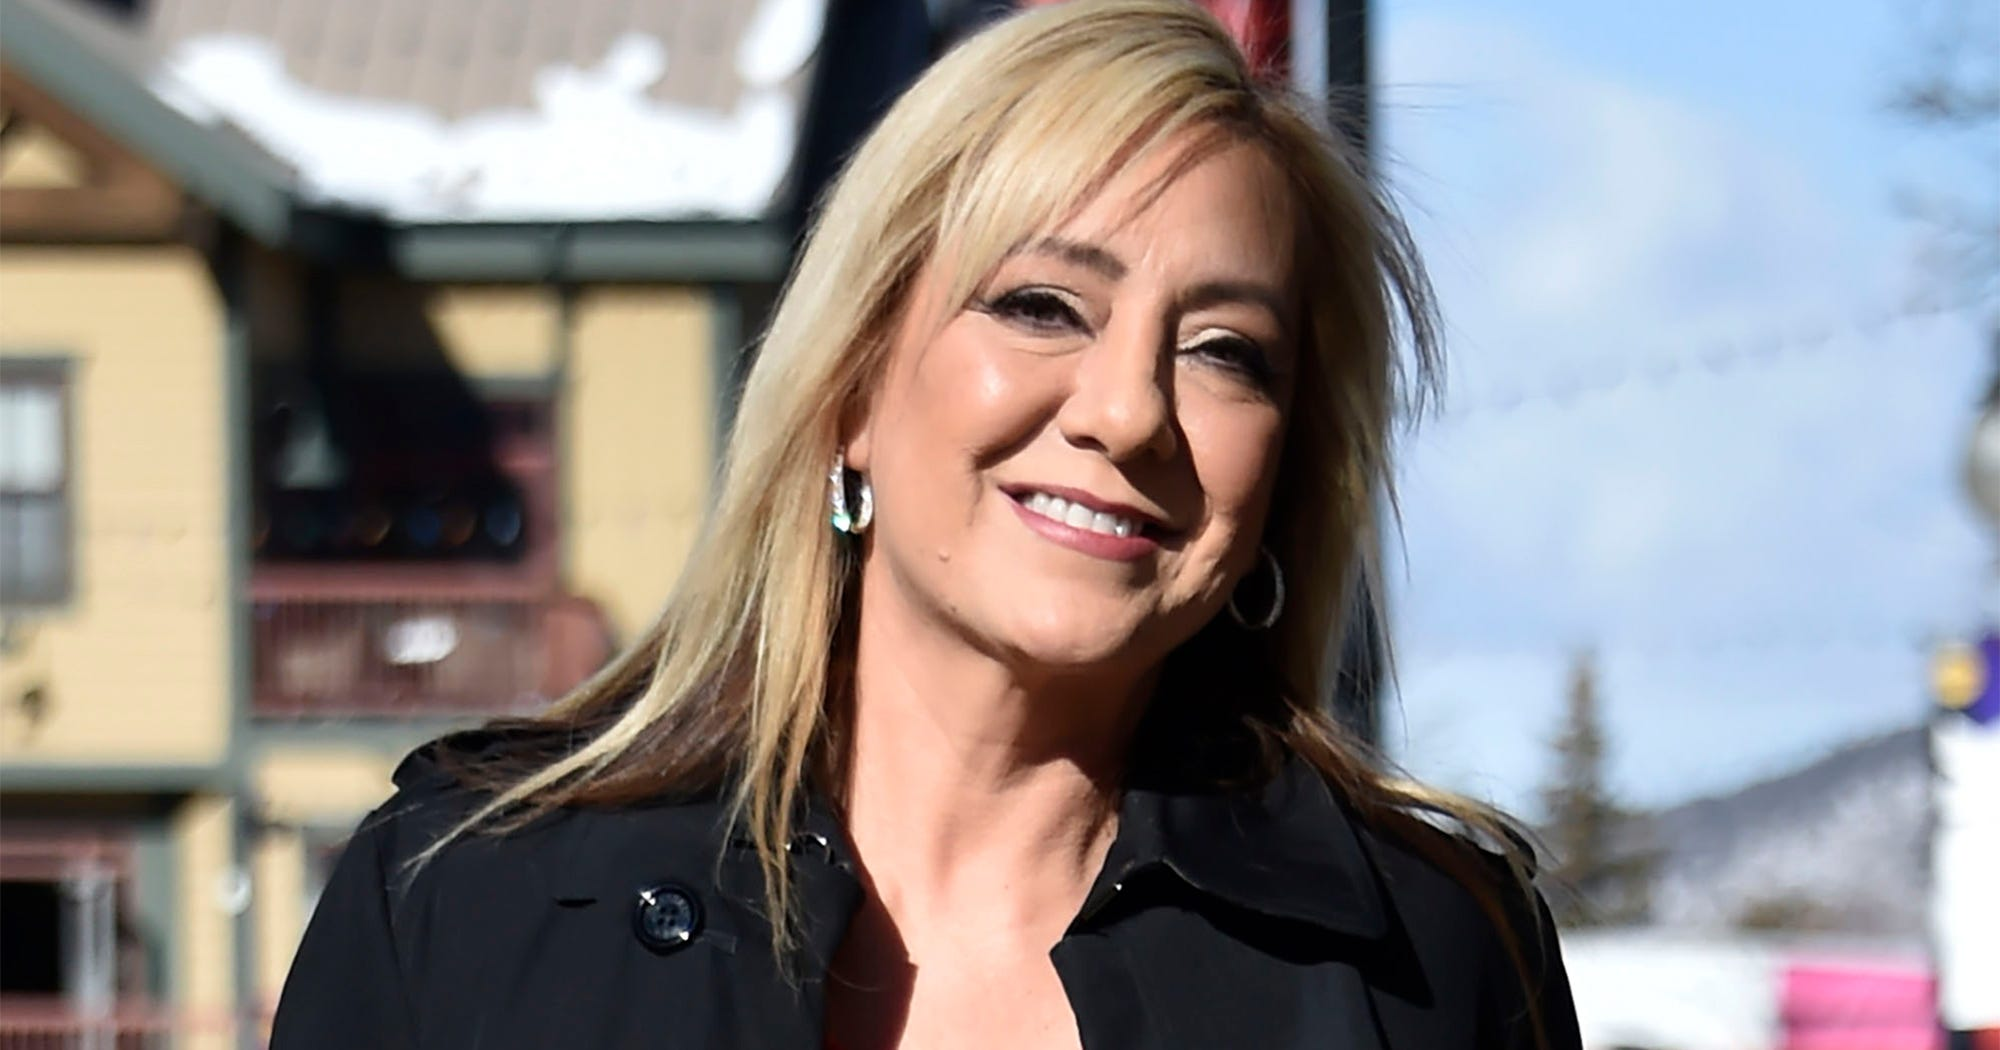 Lorena Bobbitt Avoided Jail, But That Didn't Save Her From Further Trauma